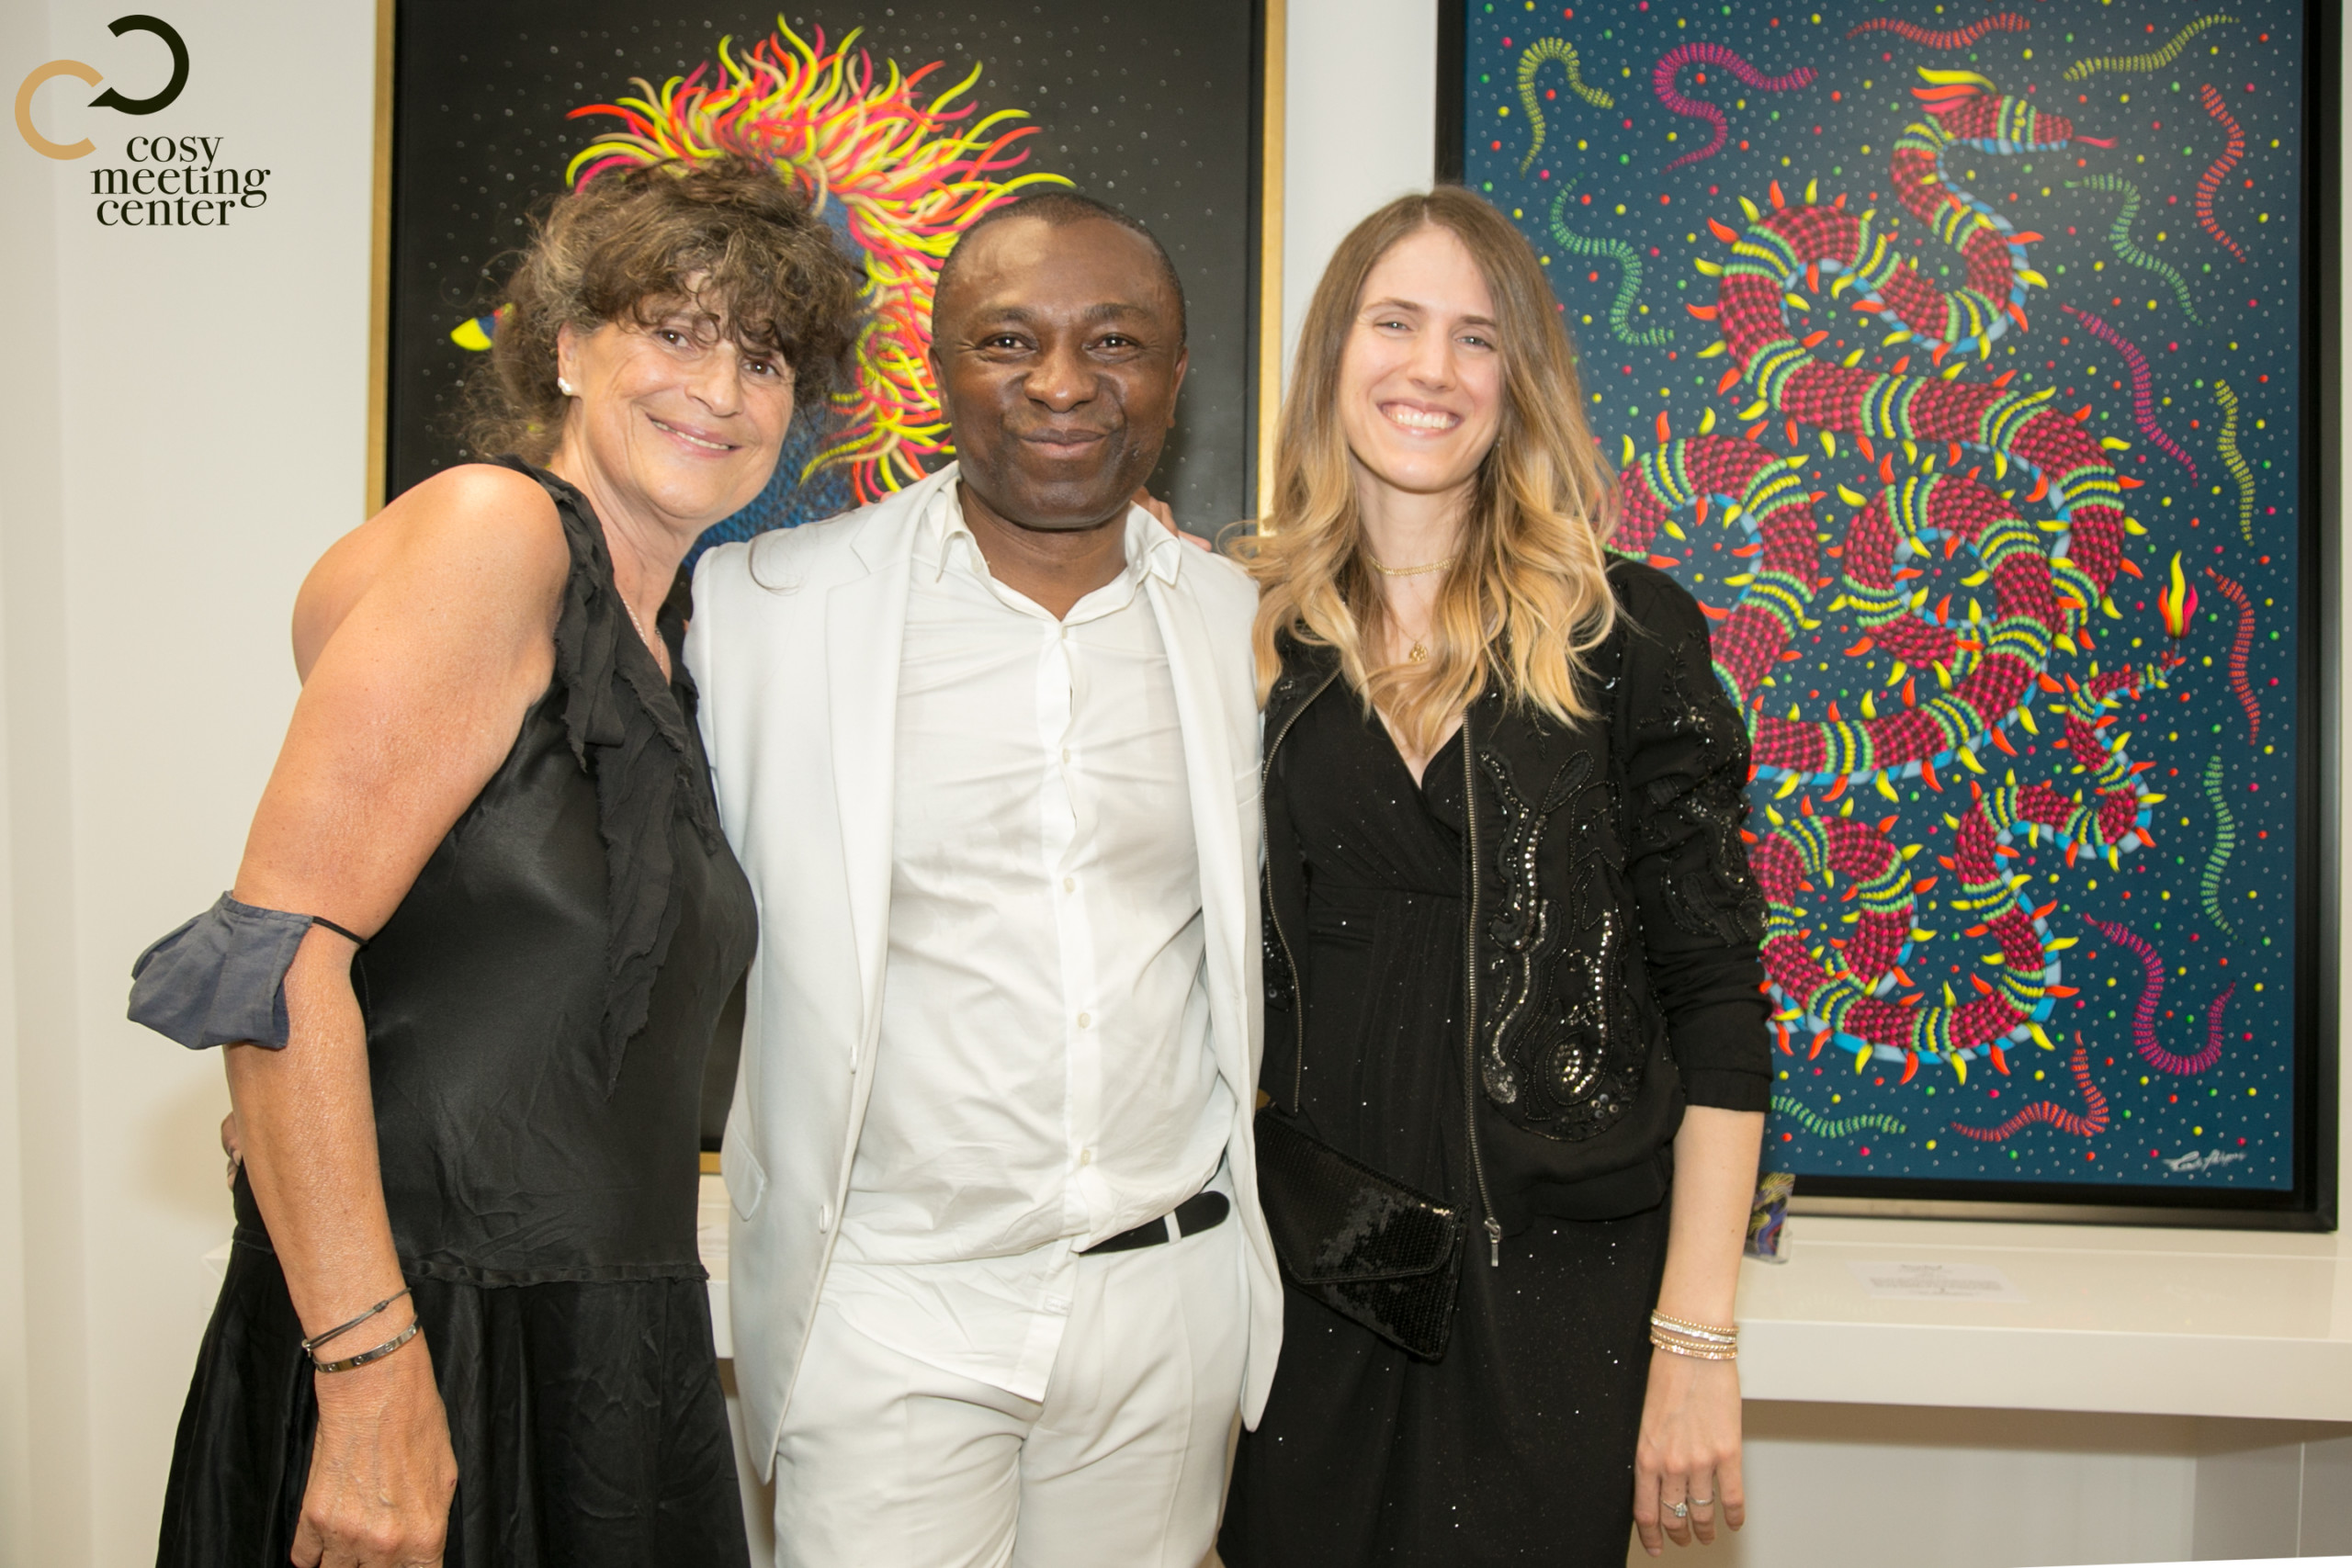 COSY MEETING CENTER Connection with all the arts - Sir Kenneth Johnson - Marie Rocha Reis Artist - Official Media Partner DN-AFRICA - DN-A with Daniel NGUYEN - Video Broascat Production PATSHOW ACTIVITES with Patrick - Lachaud - Francis Camera Team from Aimé MONTMARTRE